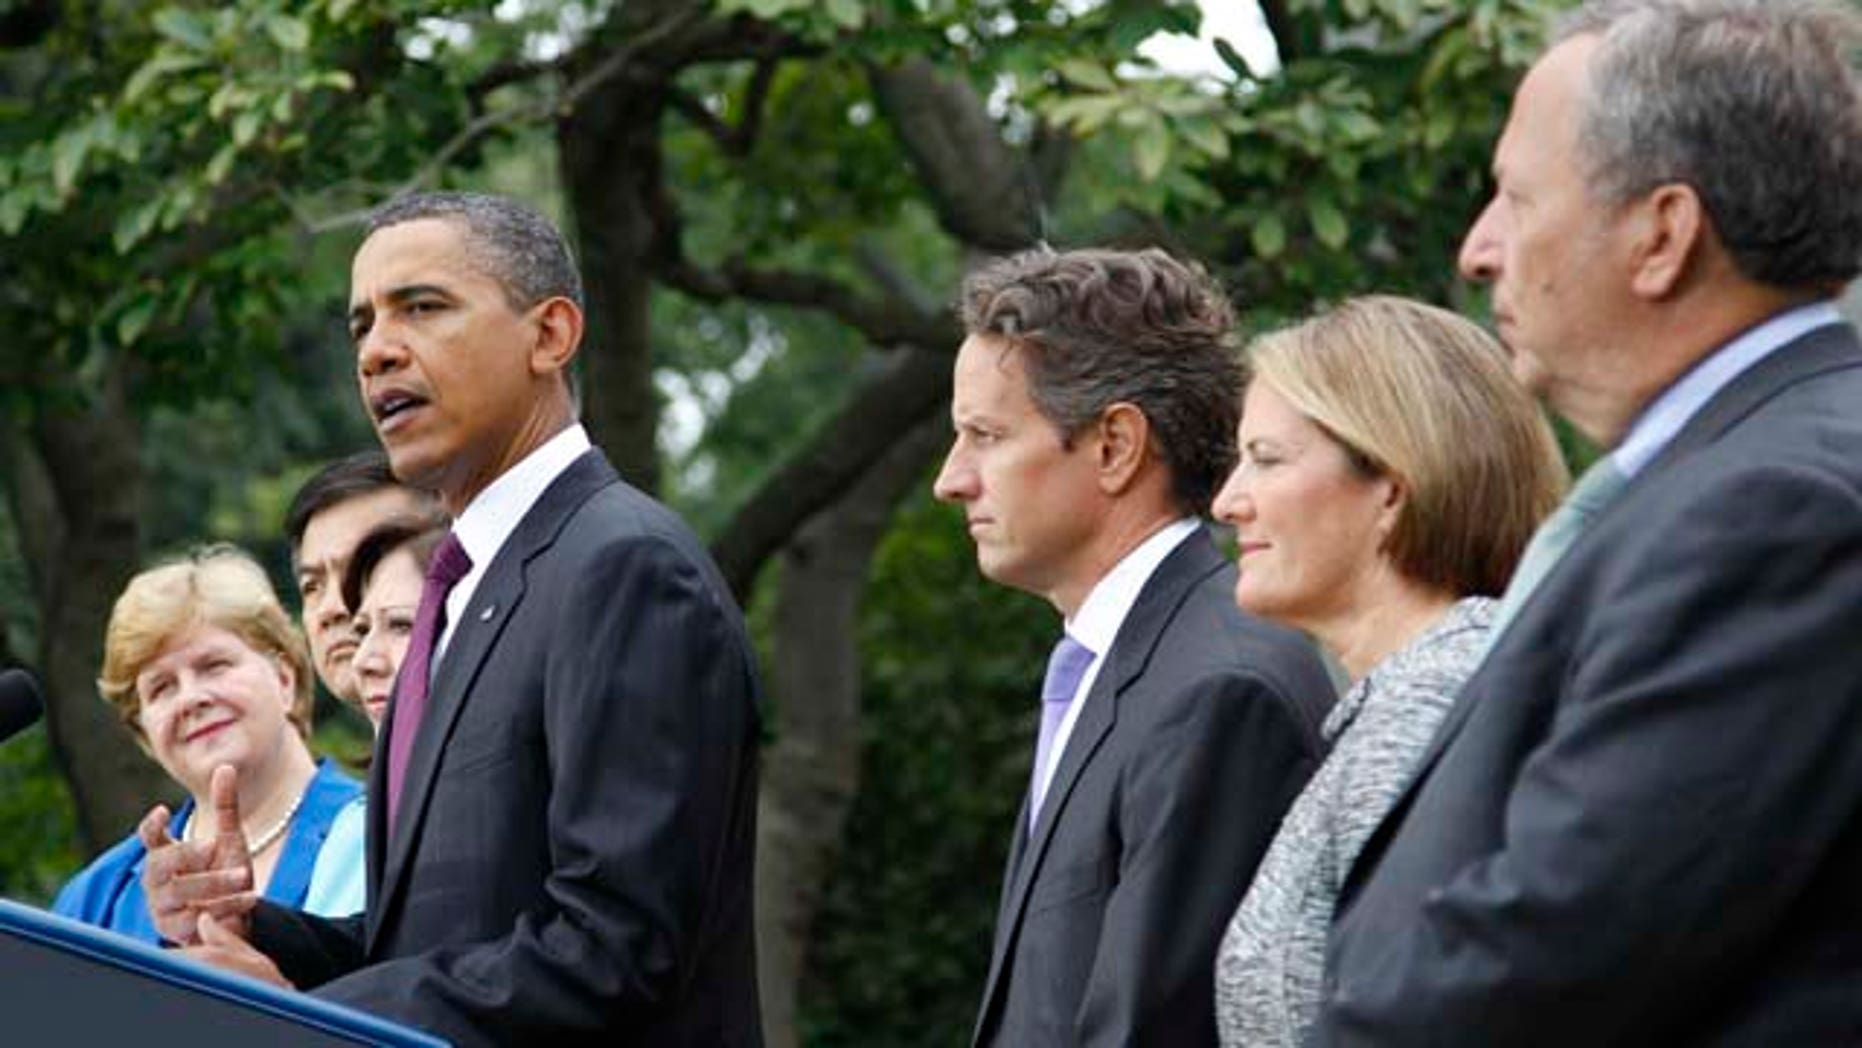 Sept. 3: President Barack Obama, center, delivers a statement on monthly jobs number in Rose Garden of the White House in Washington. From left are, outgoing Council of Economic Advisers Chair Christina Romer, Commerce Secretary Gary Locke, Labor Secretary Hilda Solis, the president, Treasury Secretary  Timothy Geithner, Small Business Administrator Karen G. Mills and National Economic Council Director Lawrence Summers.